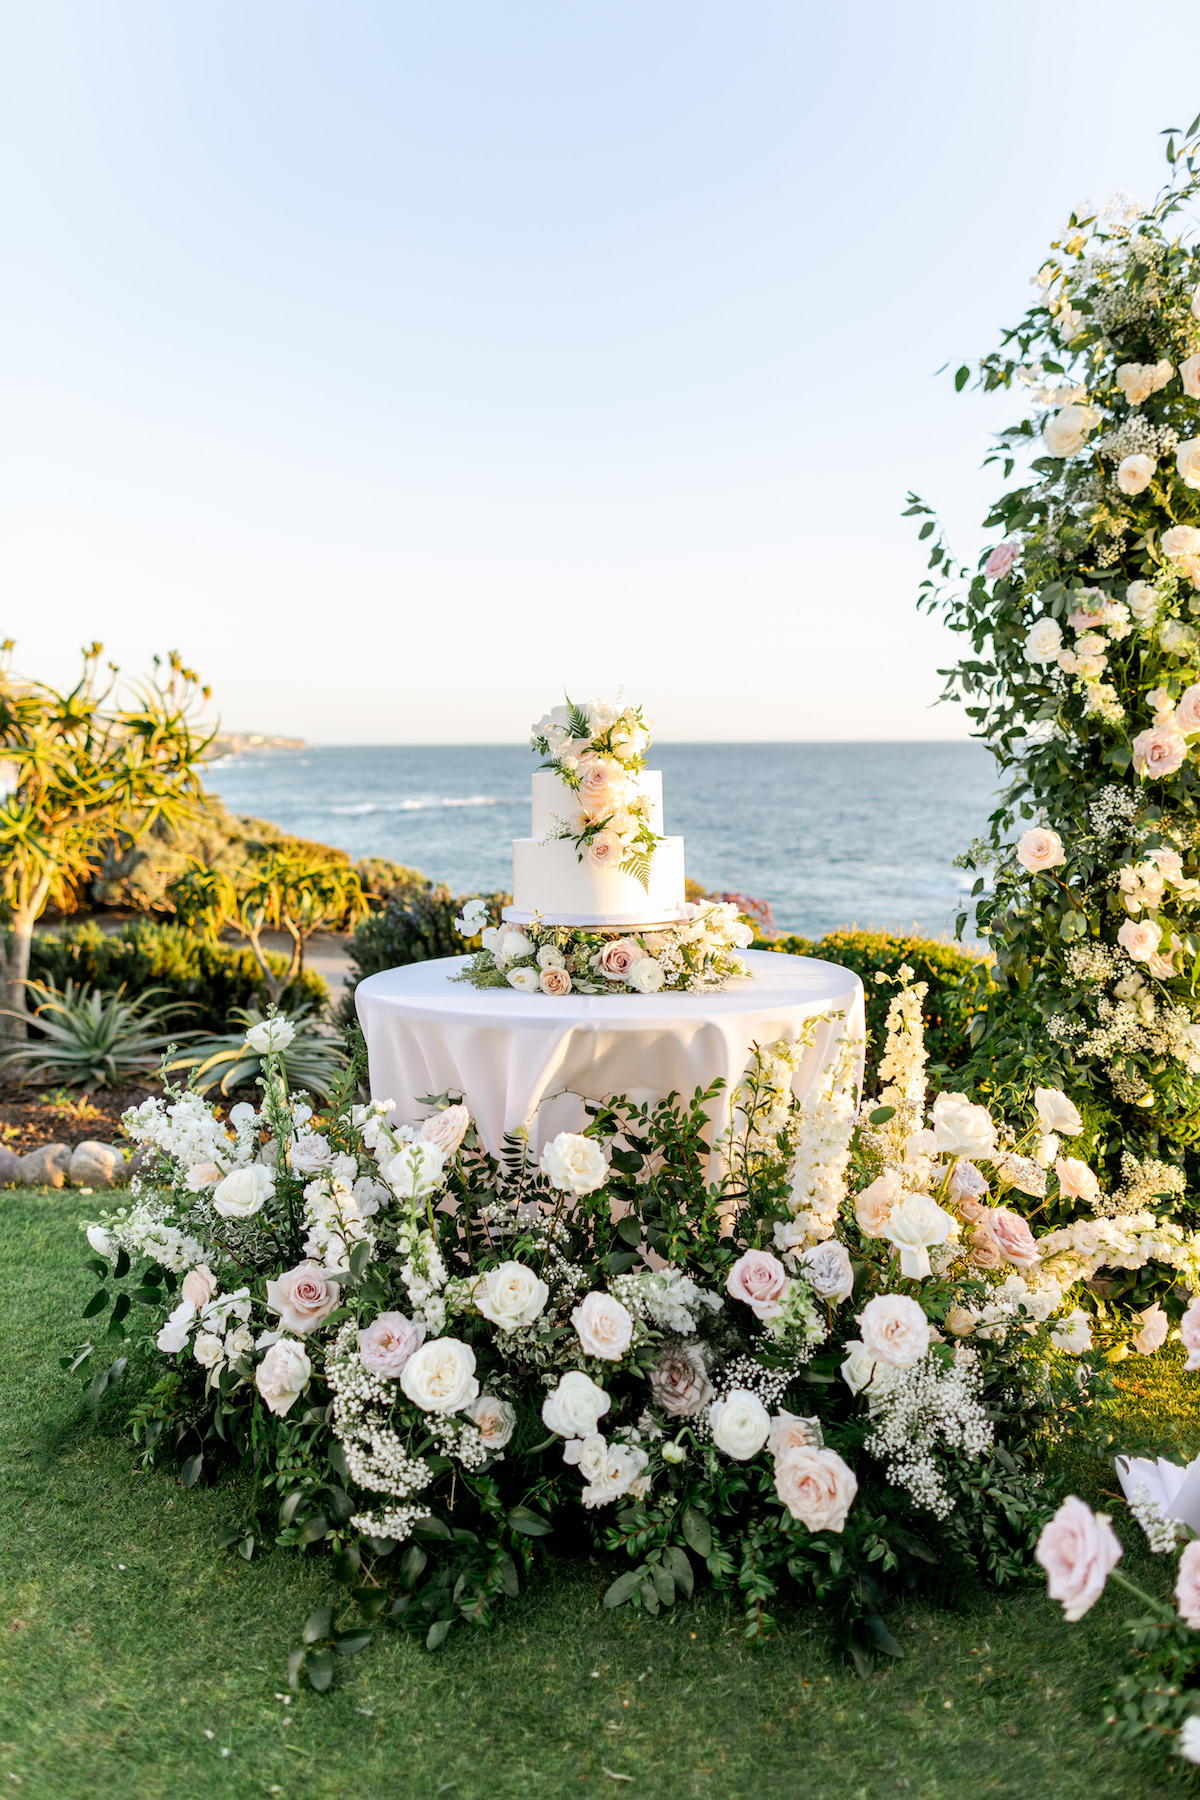 Luxury Wedding cake table decorated with flowers - Holly Sigafoos Photo